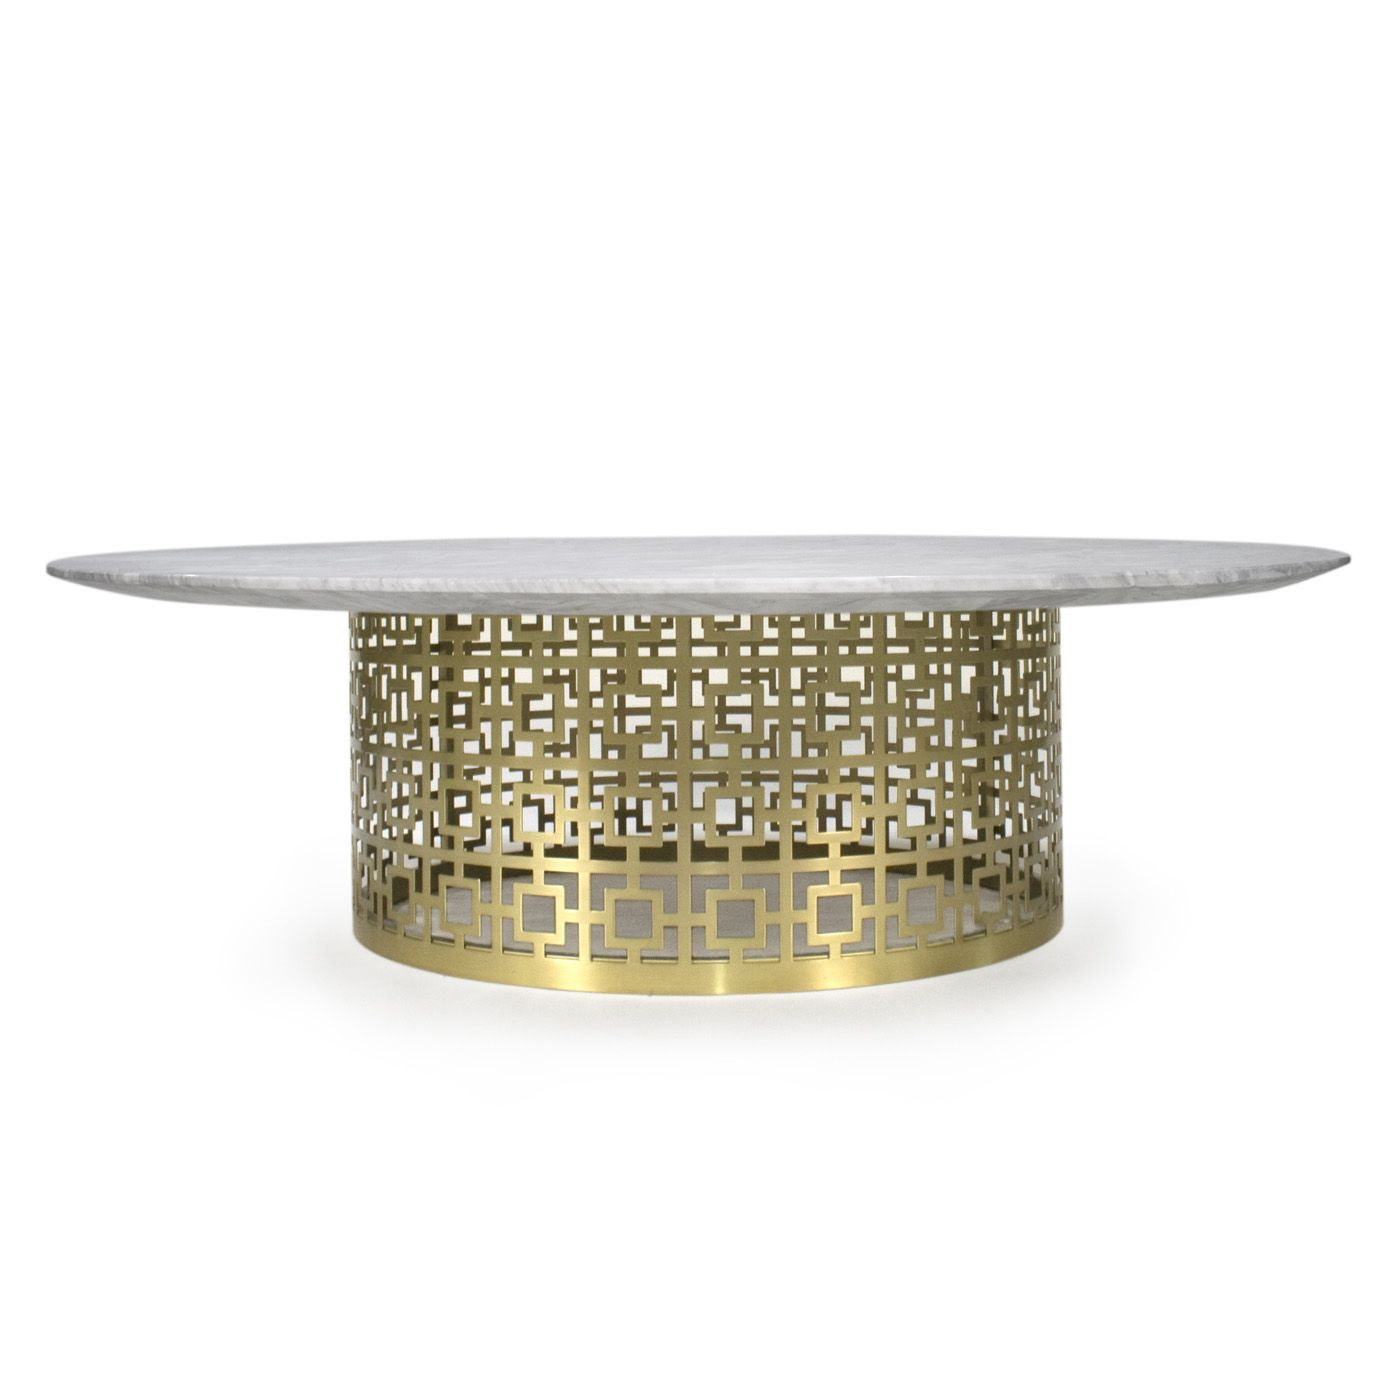 Nixon Cocktail Table Jonathan Adler - AP: Might be too small for the space